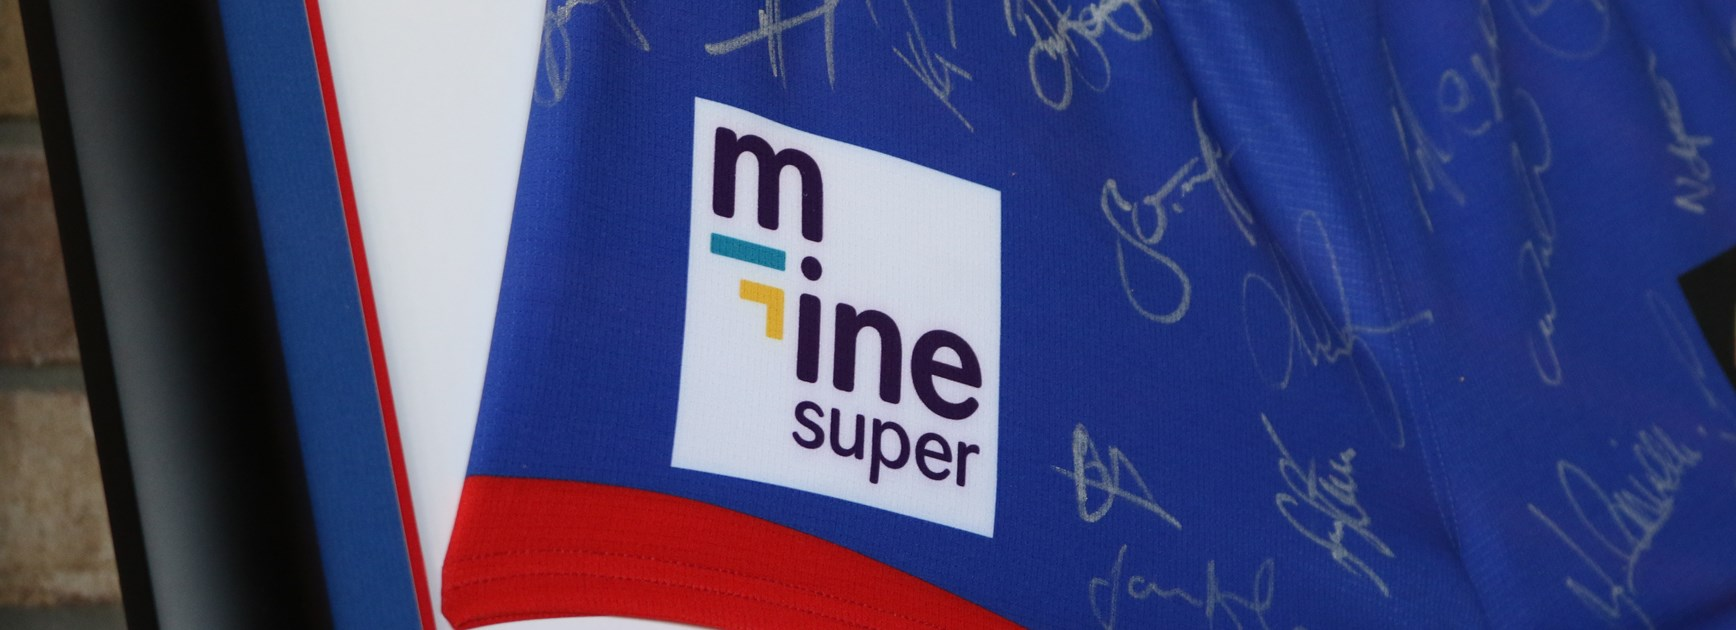 Mine Super continues Knights partnership